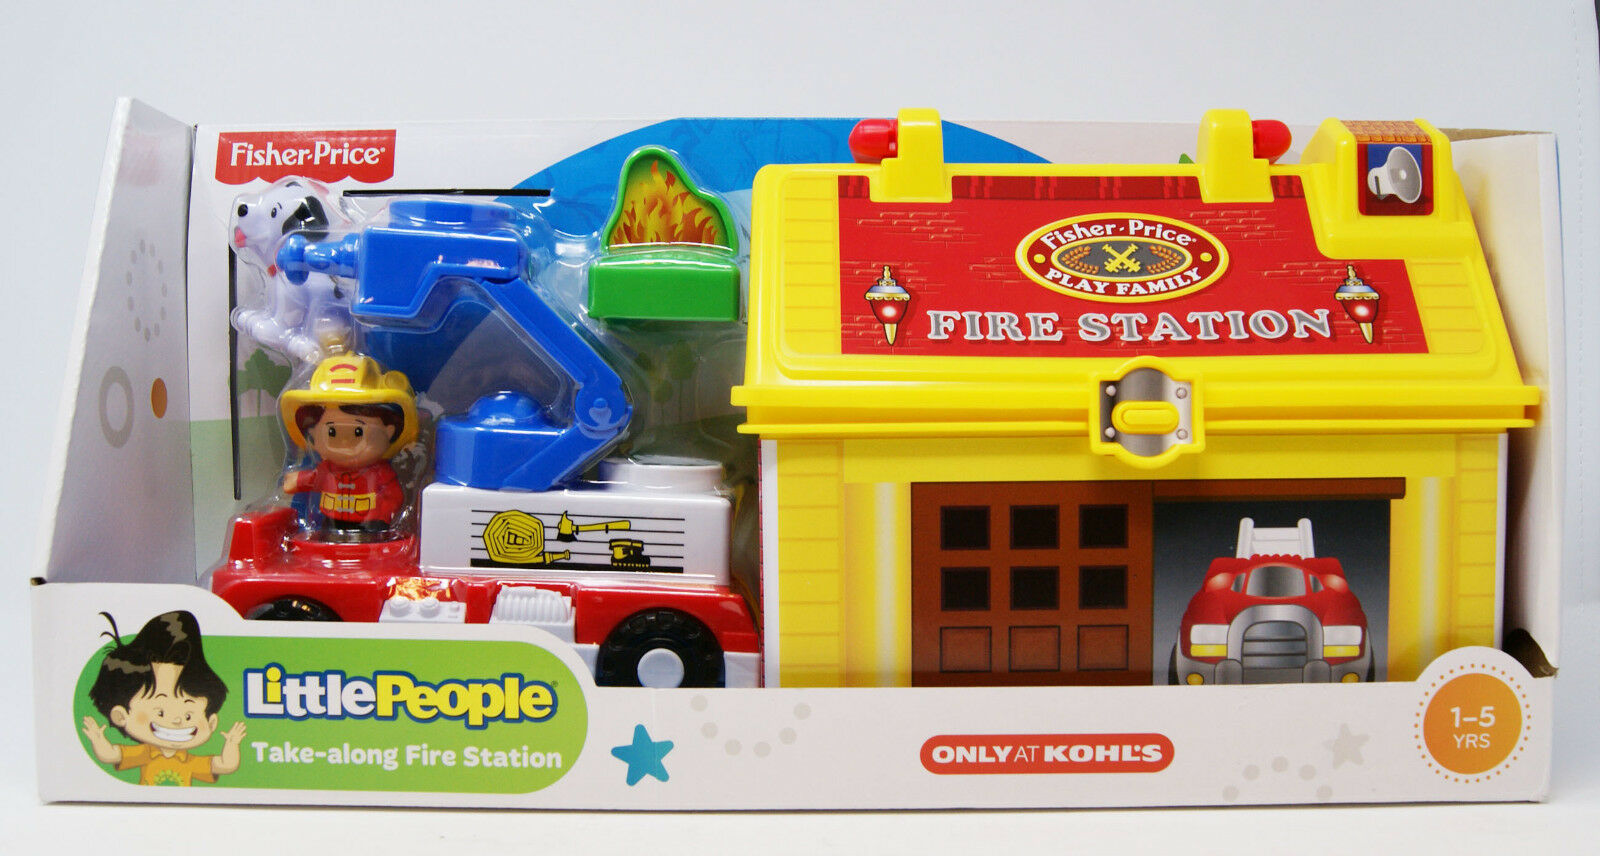 Fisher-Price - Little People - Take-along Fire Station - 2 Figuren mit Truck